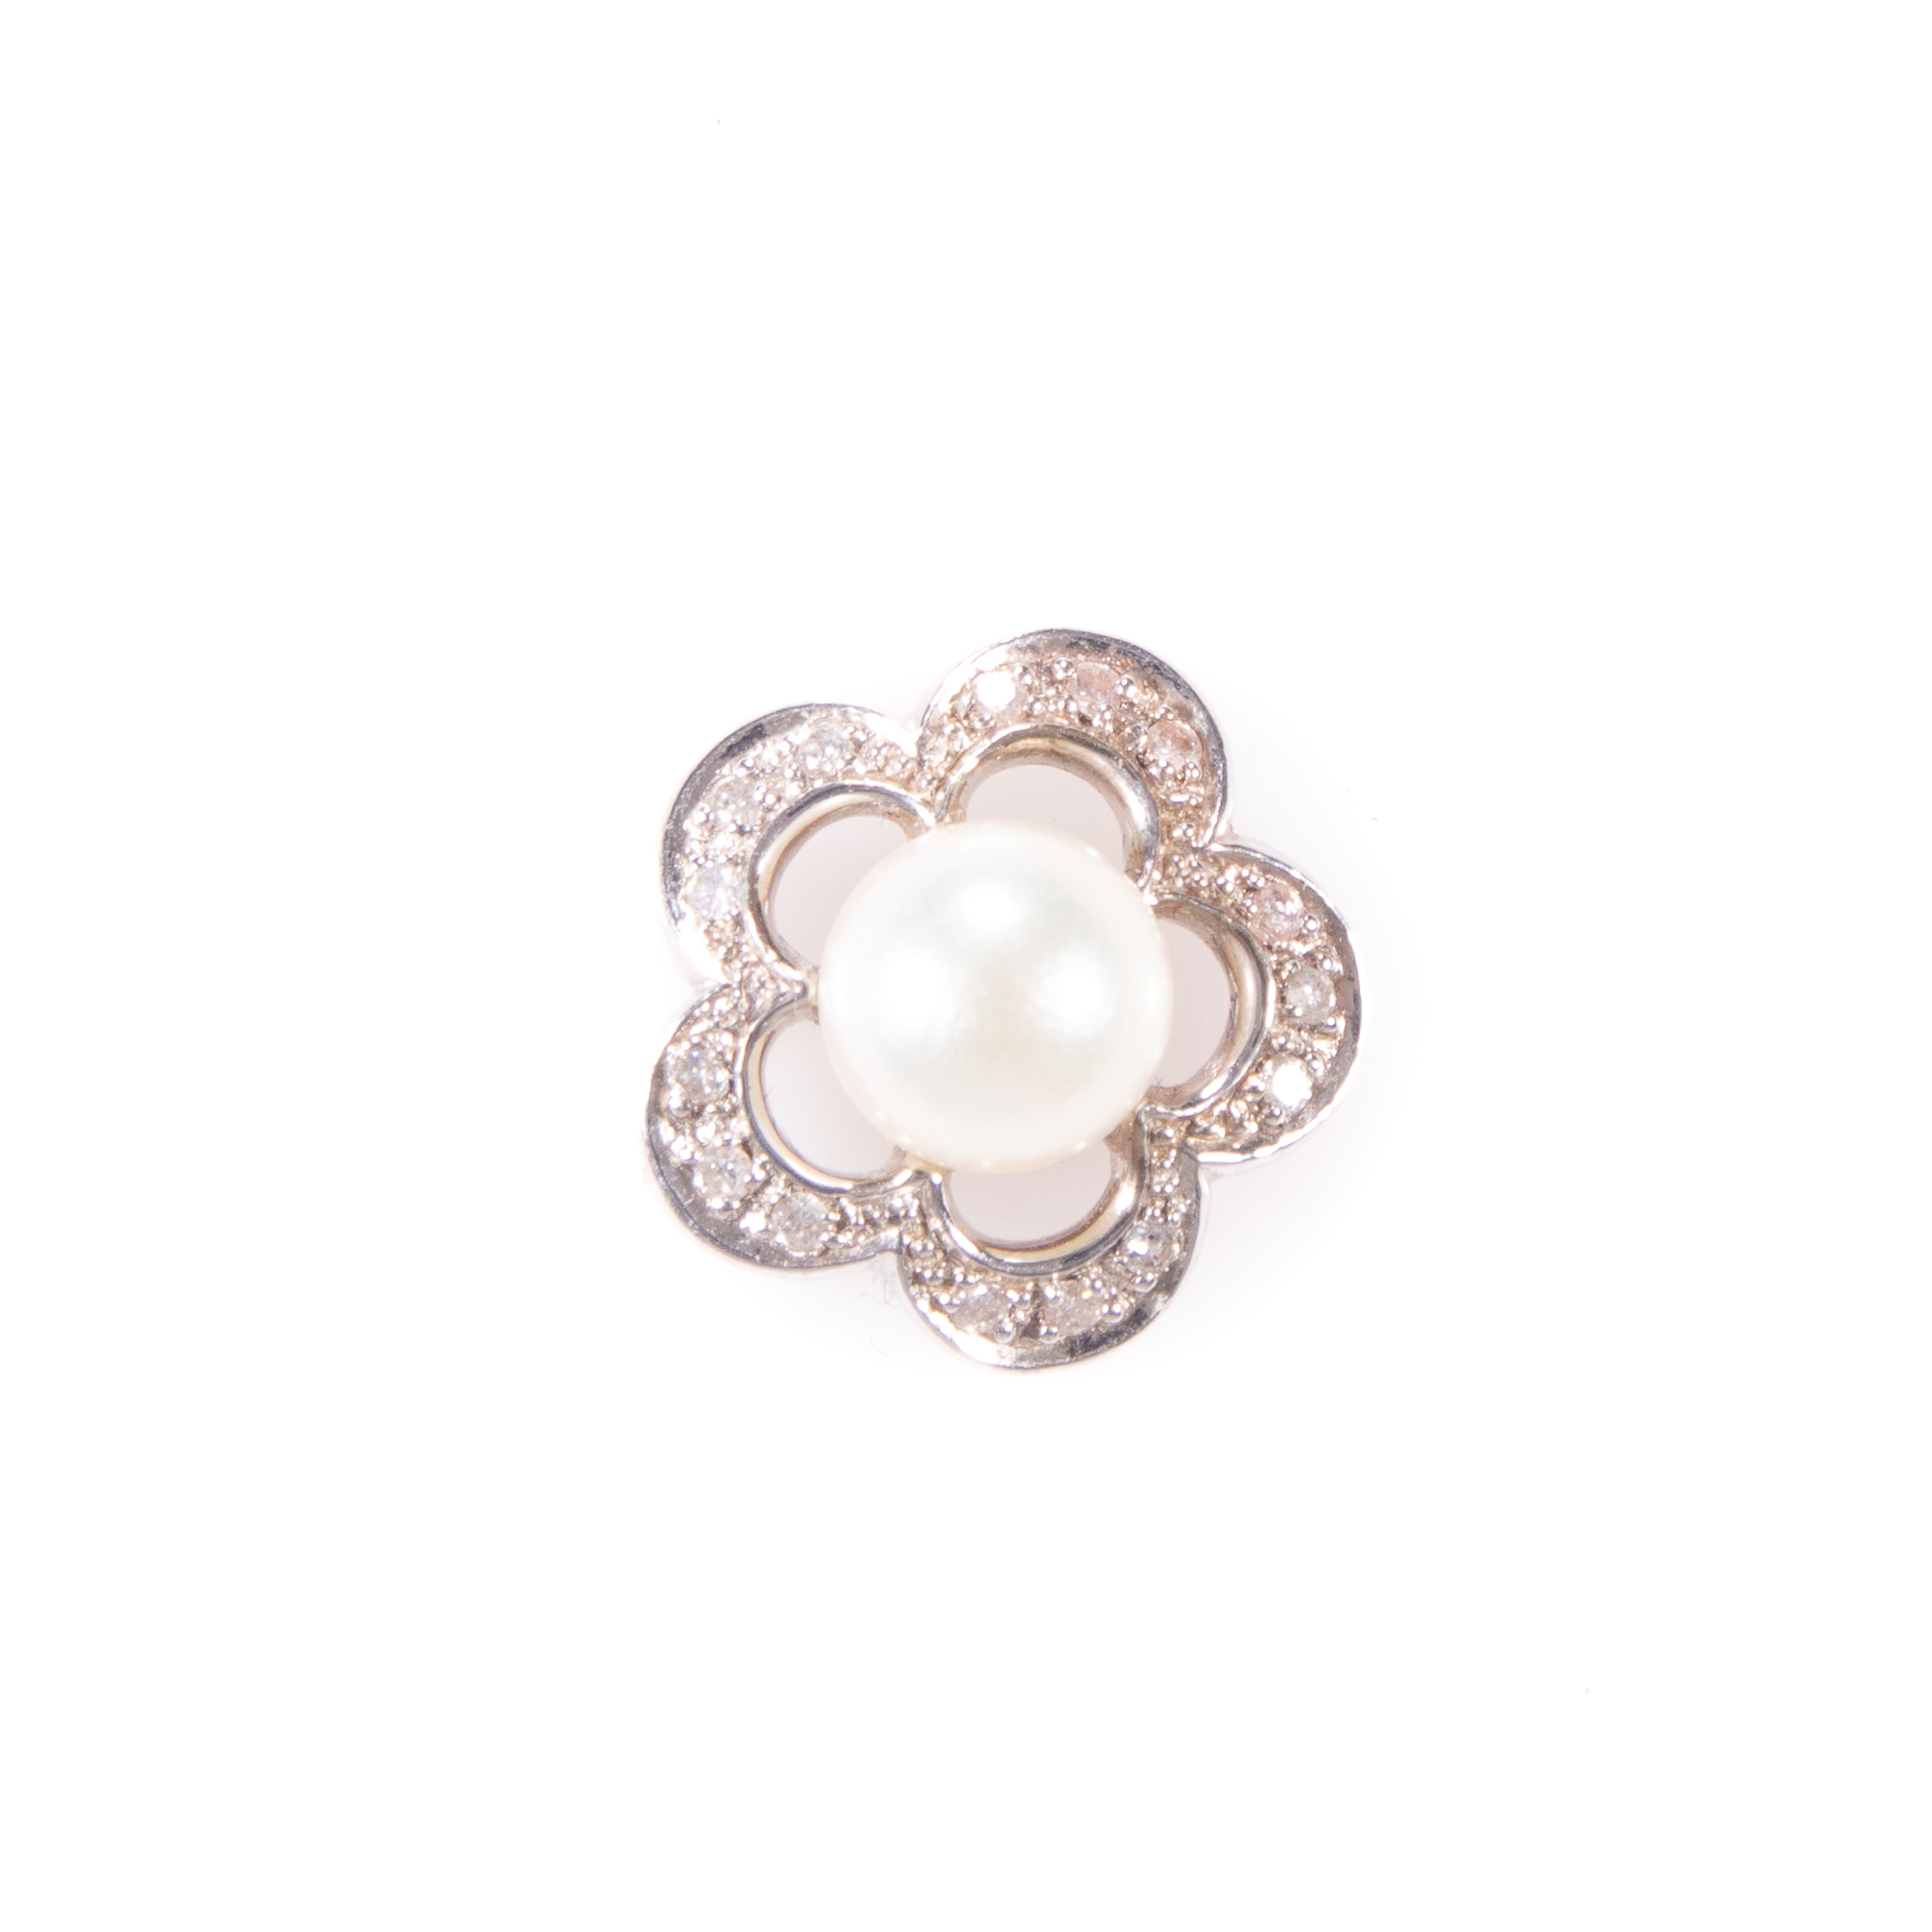 18ct White Gold Diamond & Pearl Floral Pendant - Image 3 of 6